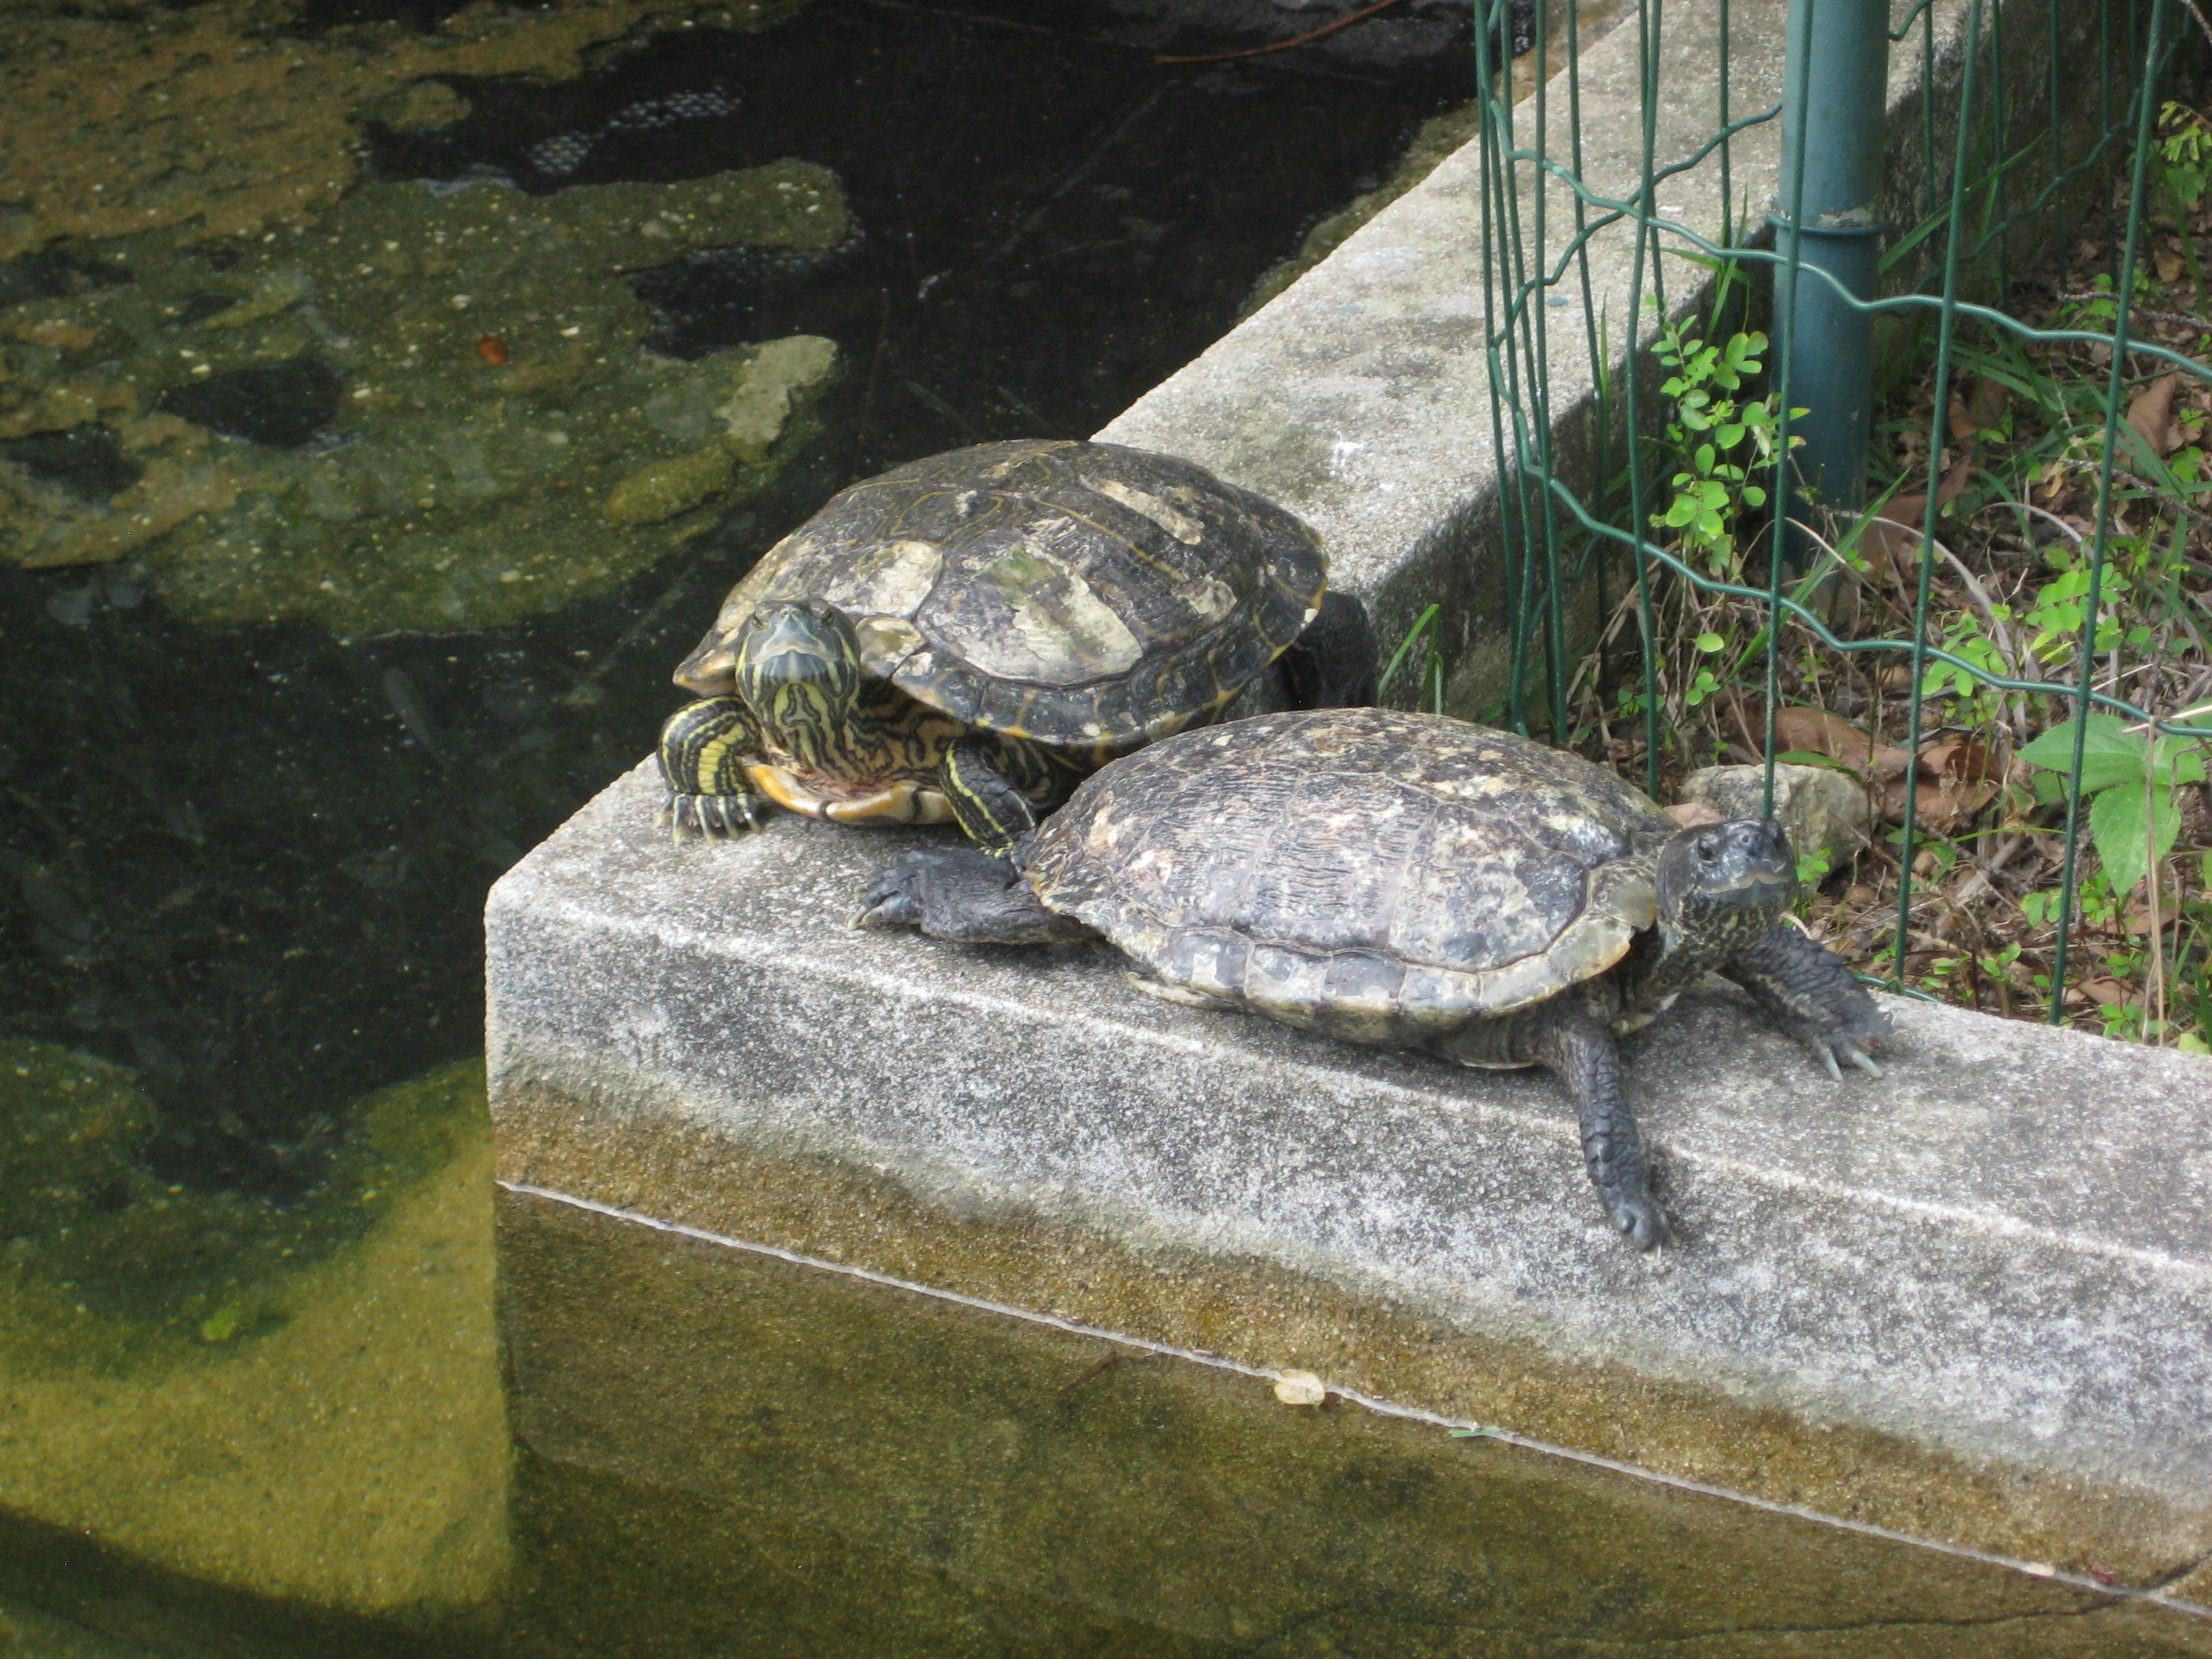 Turtles in botanic garden